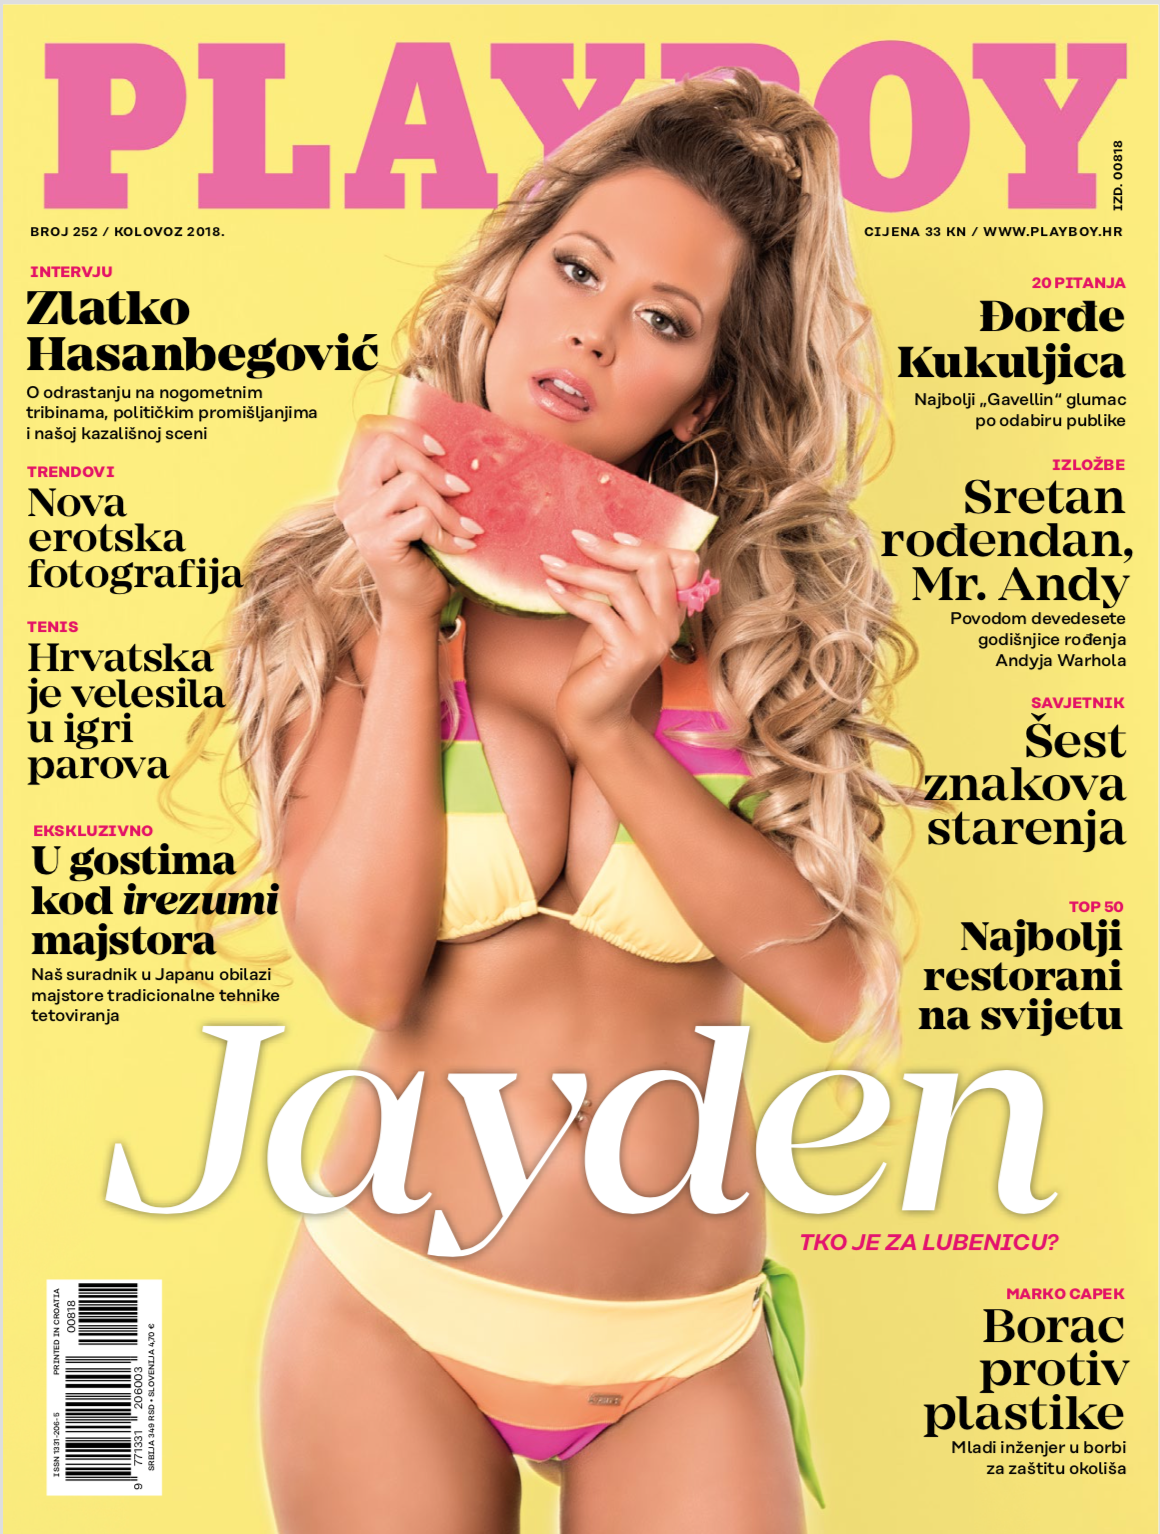 Playboy Magazine, August 2018. Croatian Edition